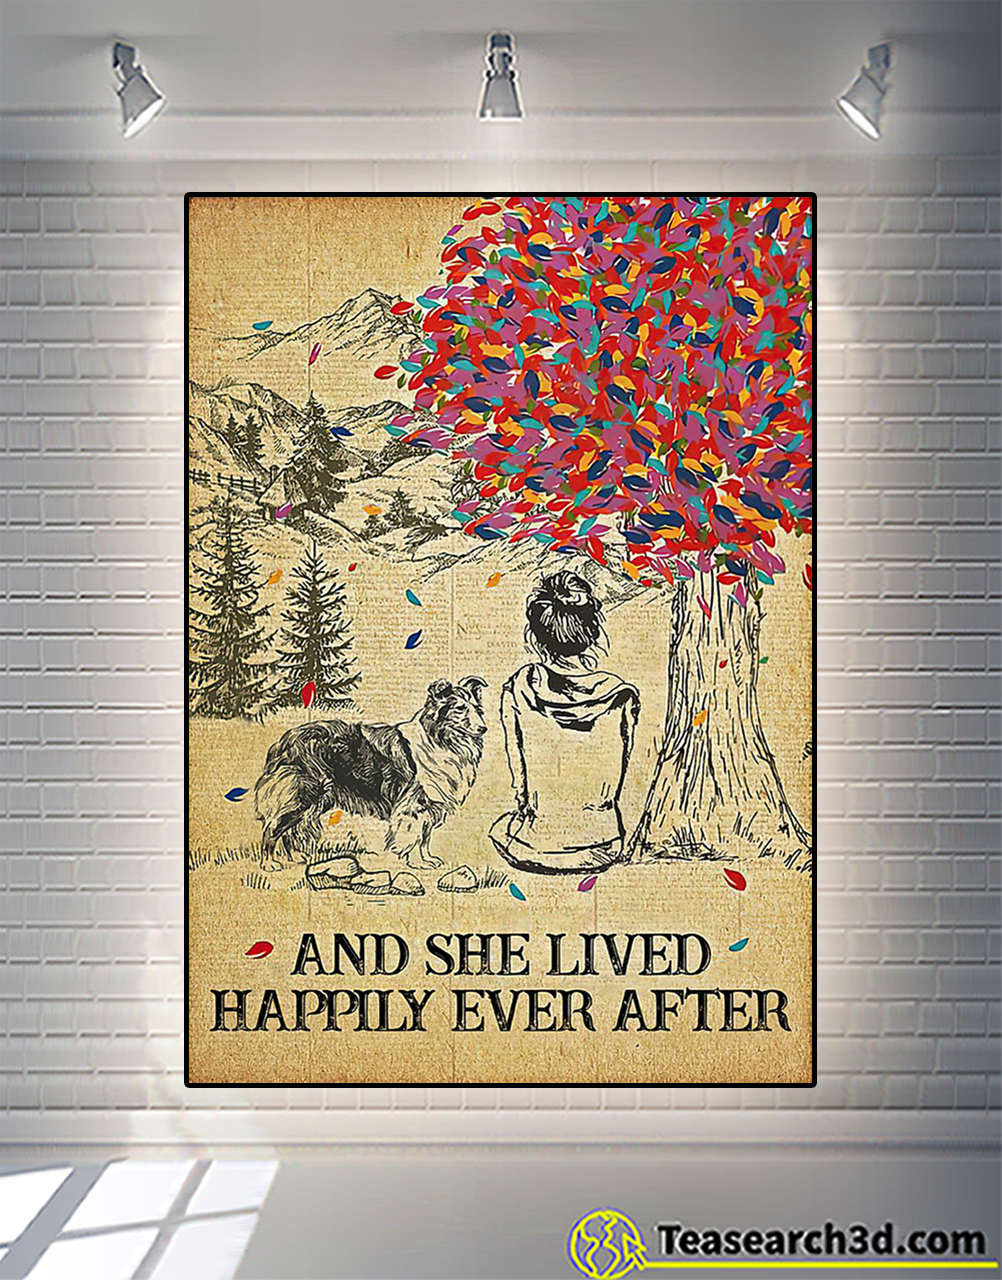 Shetland sheepdog and she lived happily ever after poster